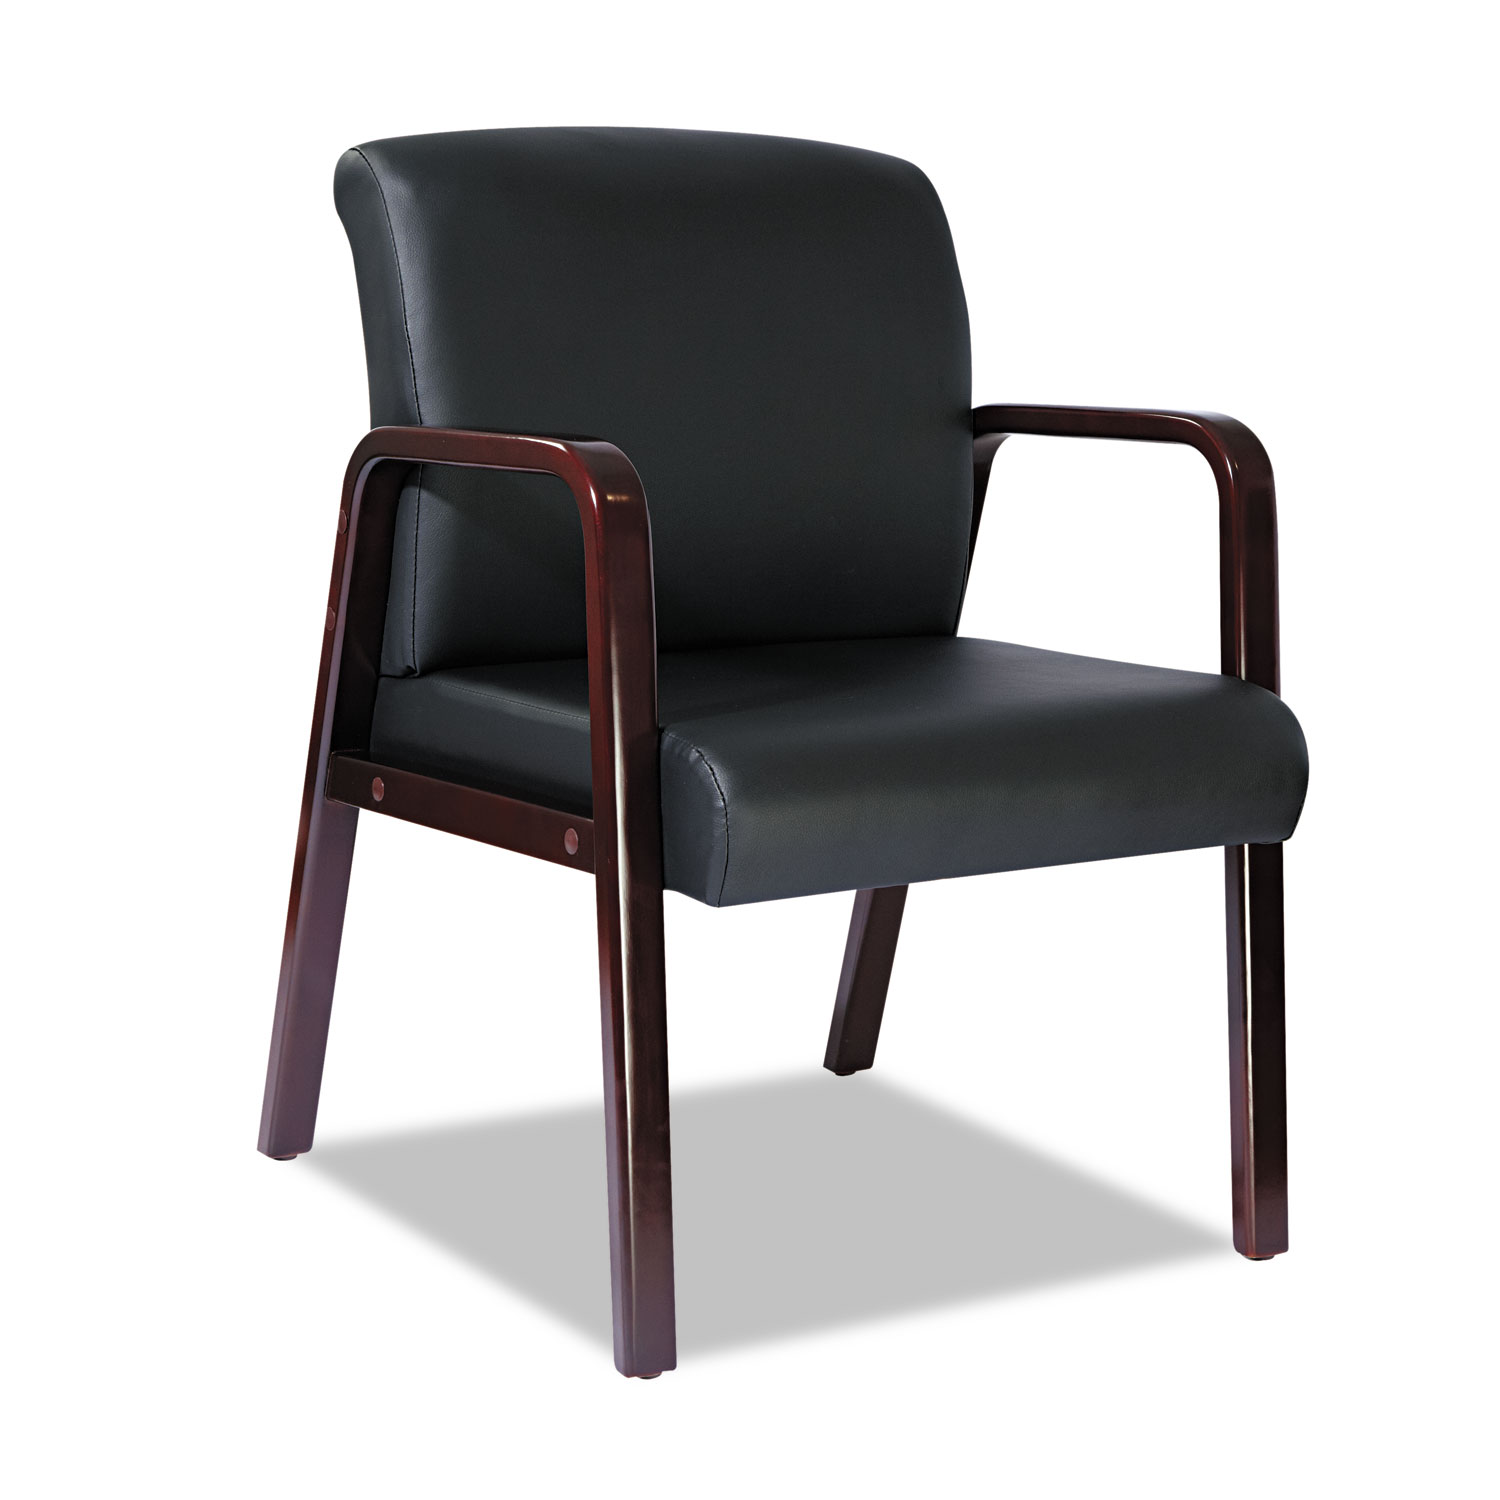 reception category chairs bleeker office source furniture street product guest chair